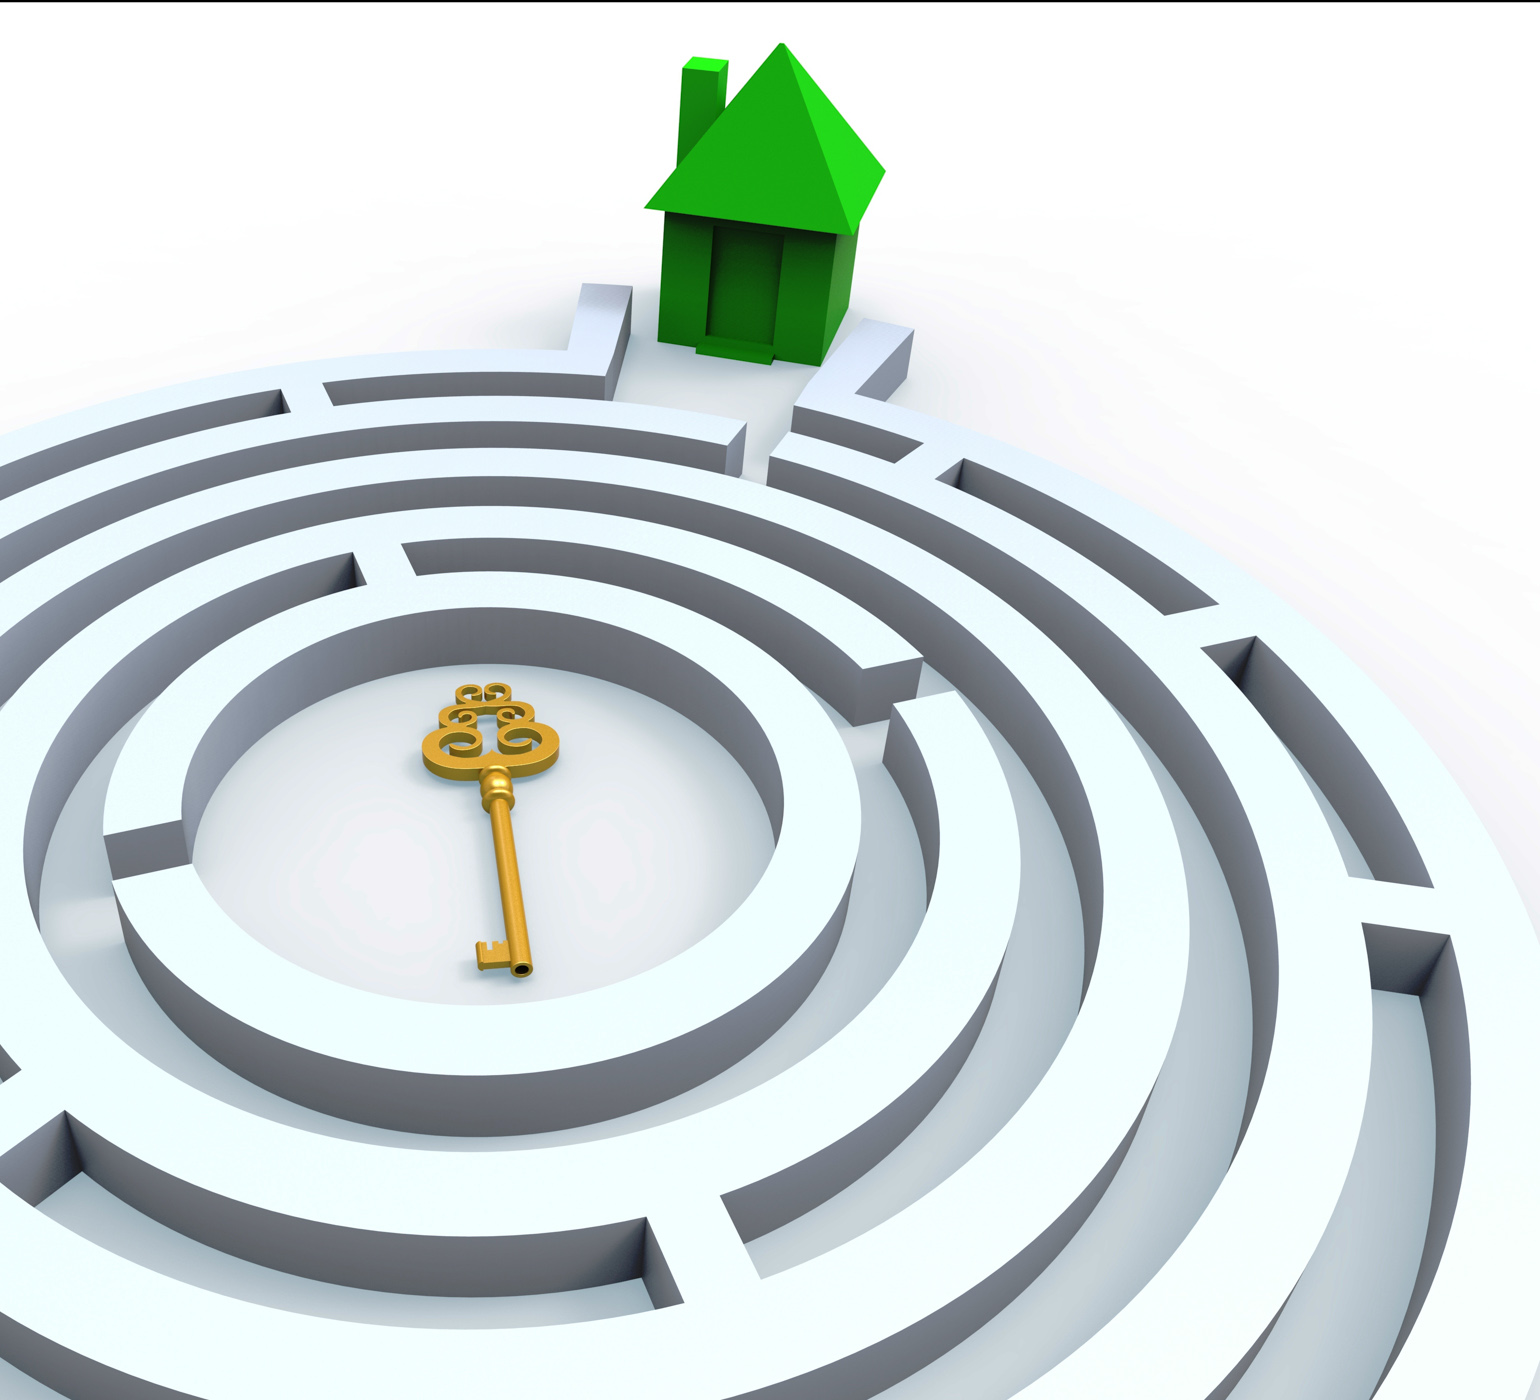 Key To Home In Maze Shows Property Search